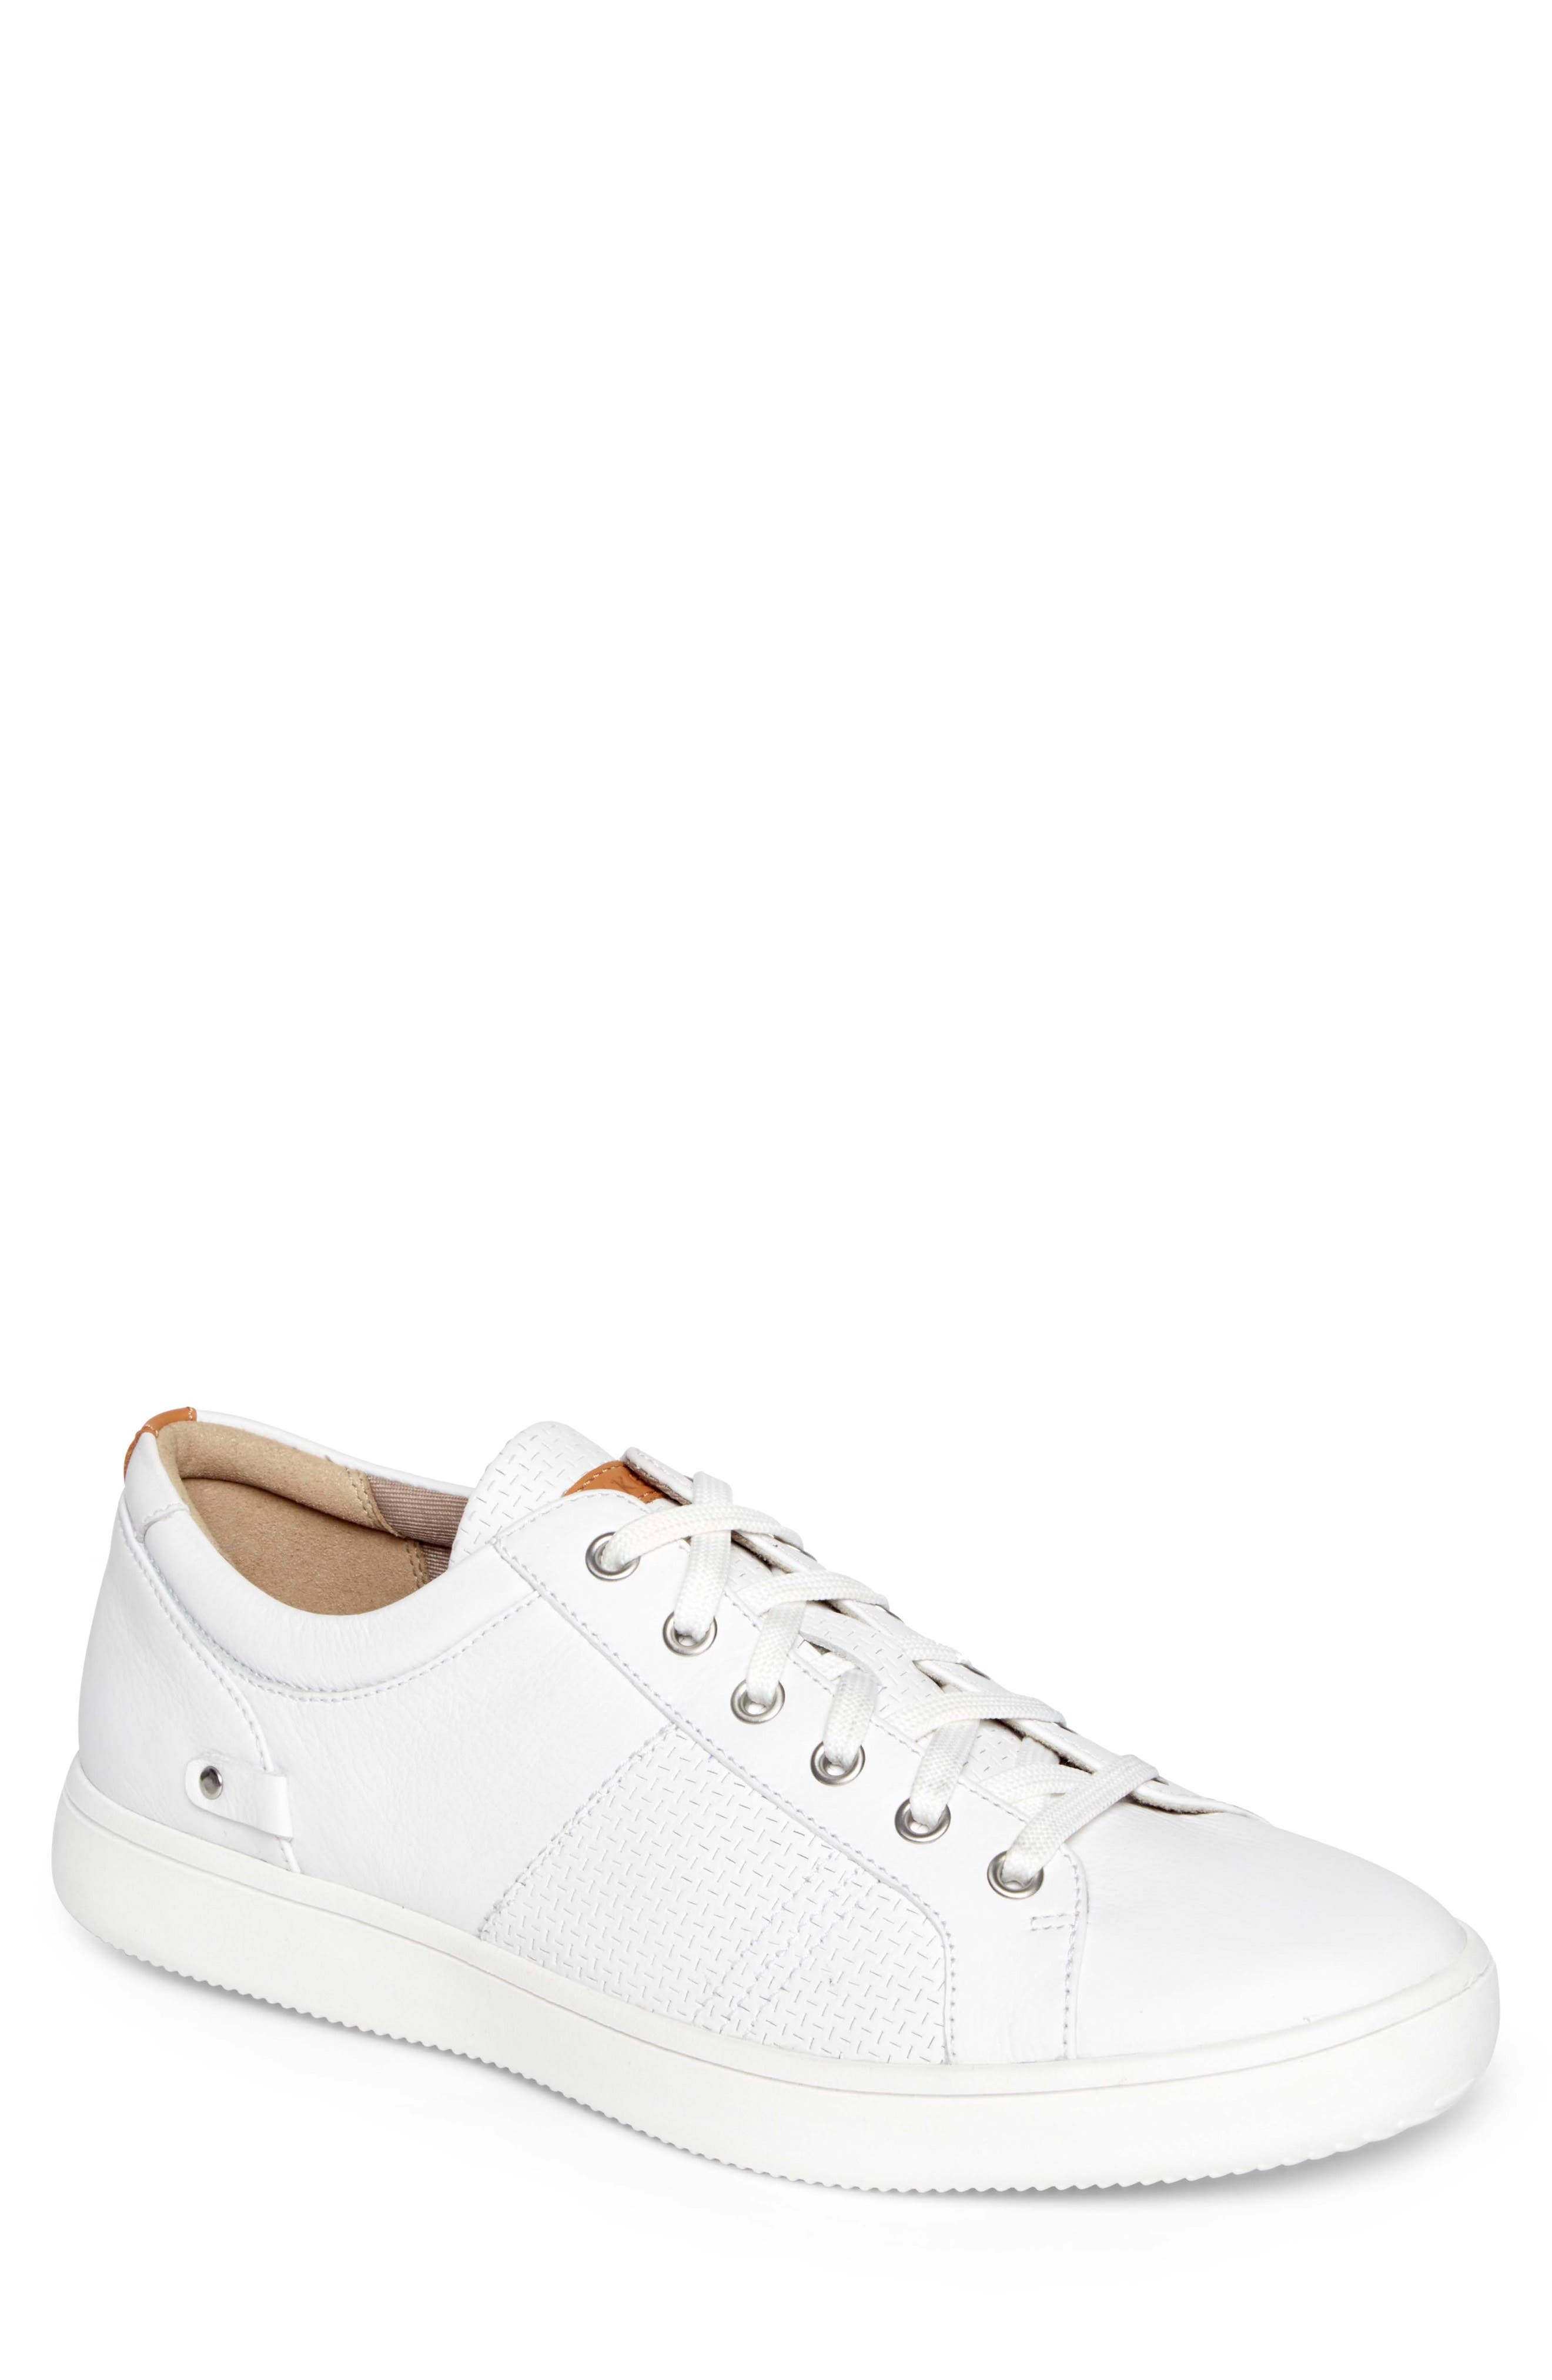 College Textured Sneaker,                             Main thumbnail 1, color,                             WHITE LEATHER